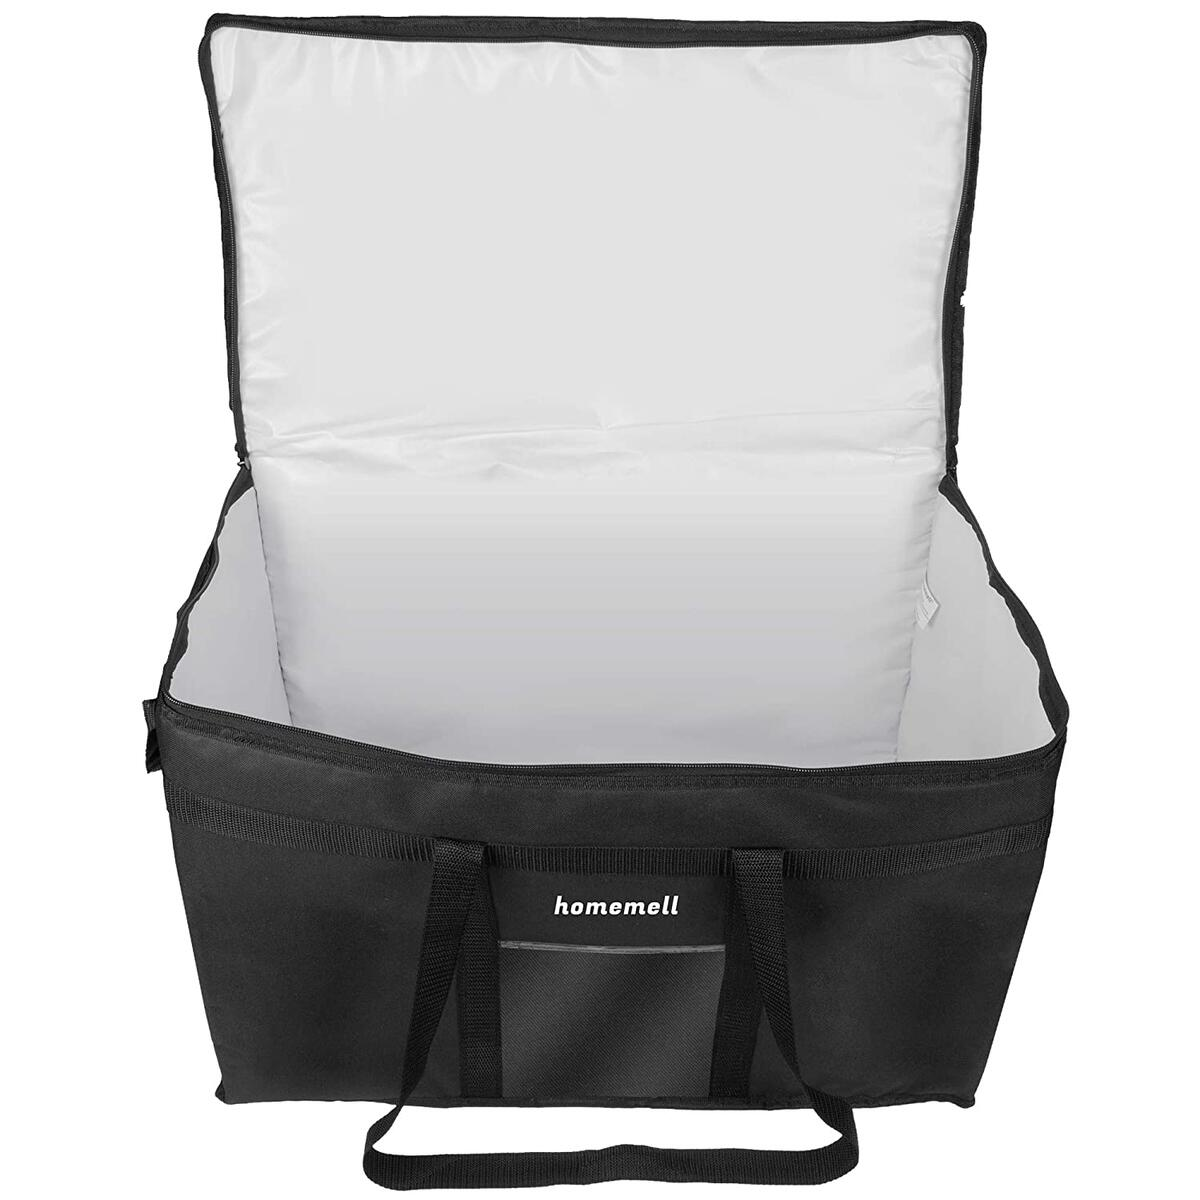 Food Delivery Bag xxxl Insulated Food Transportation Thermal Bag and Cold Bag for Groceries